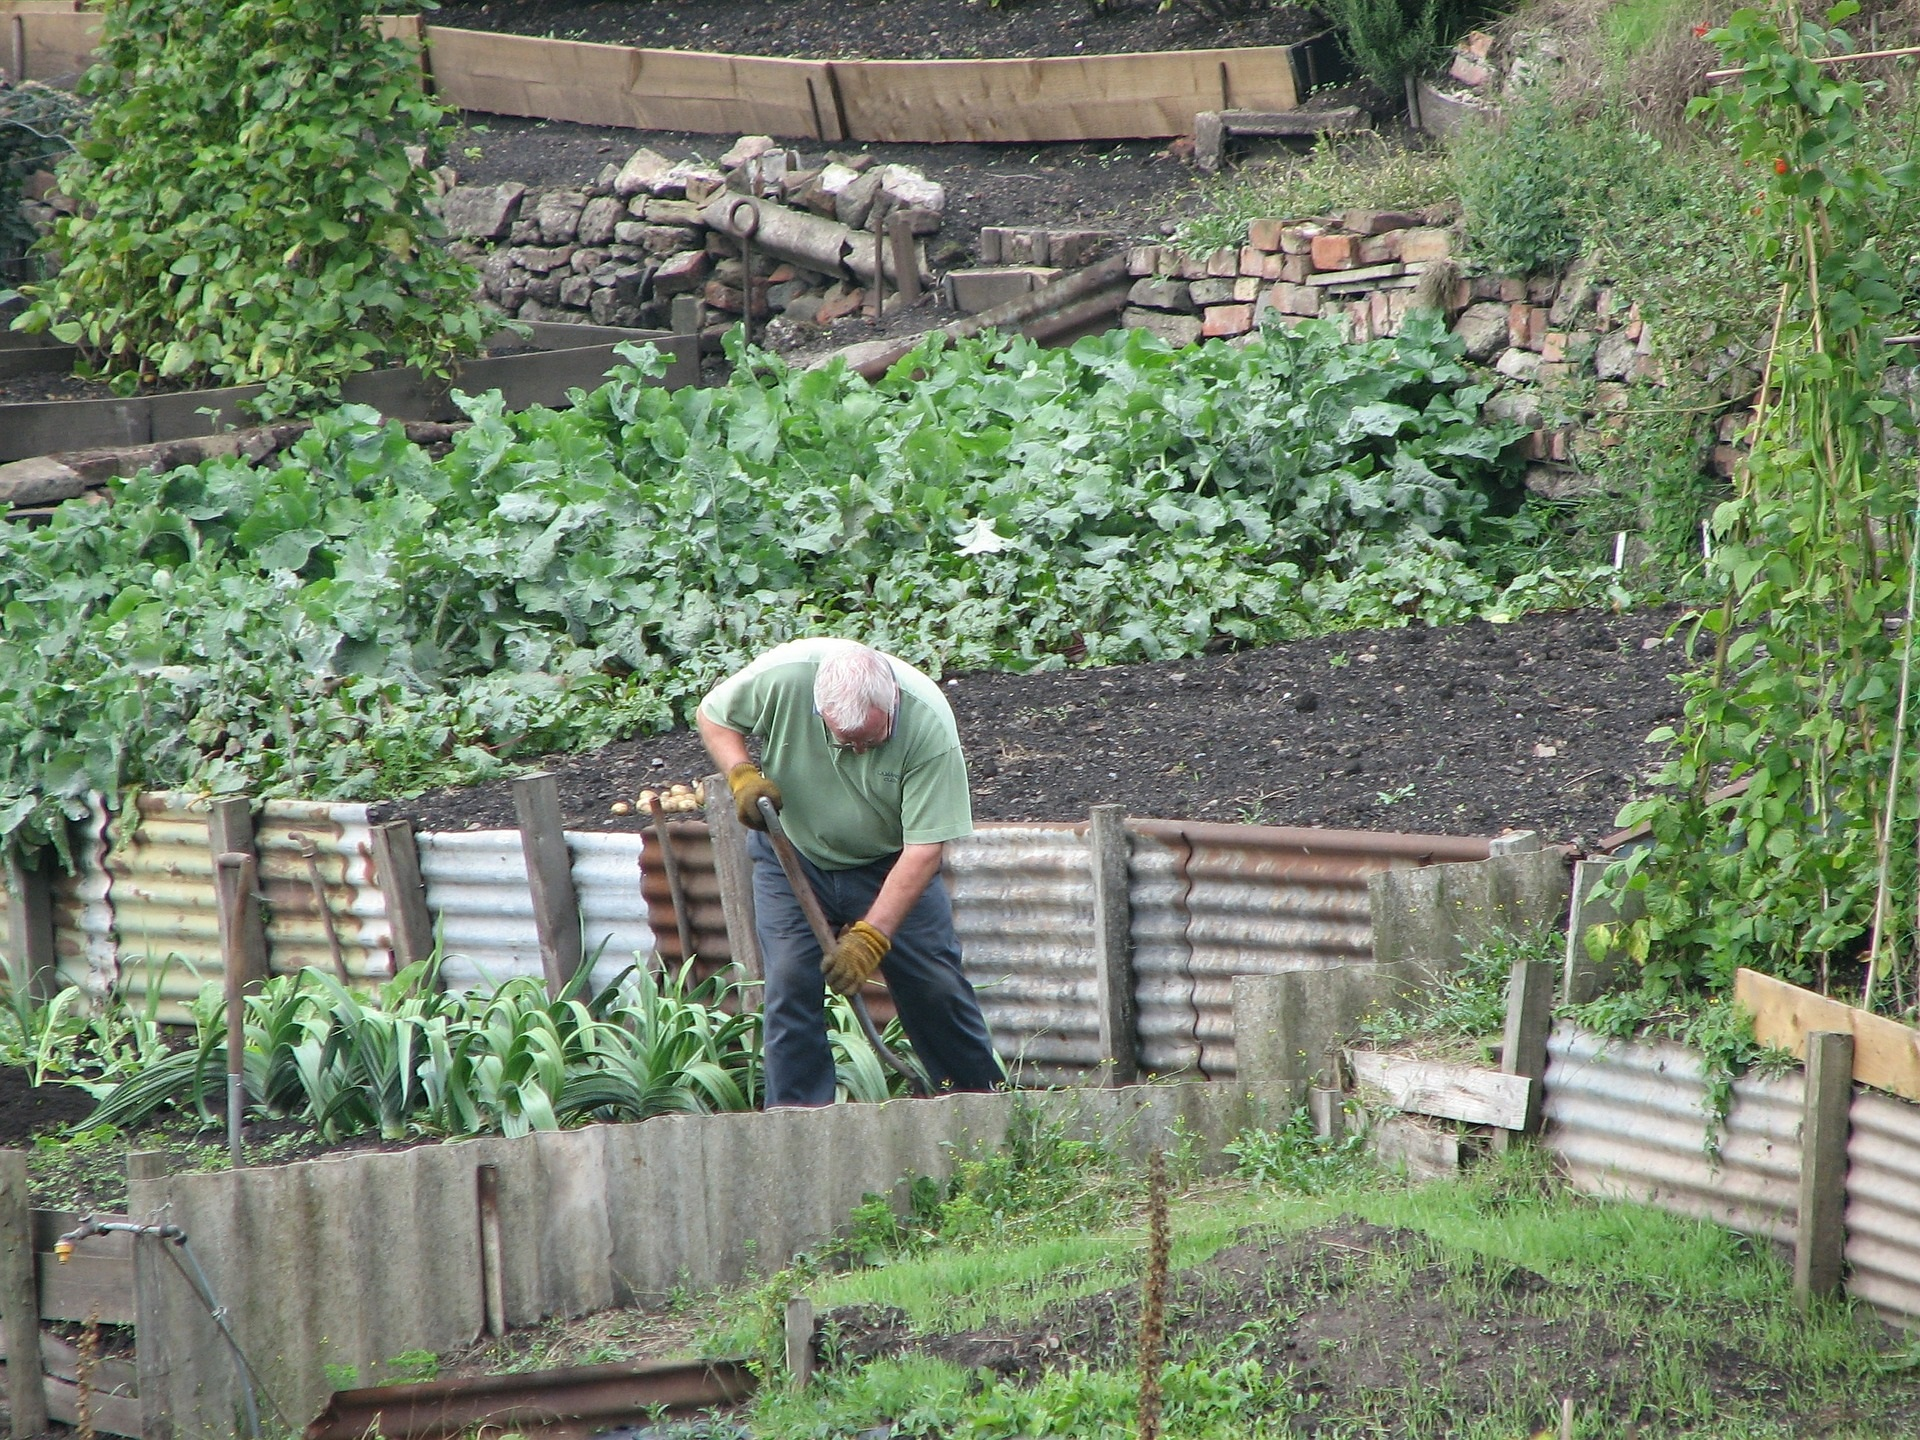 Surplus produce from Keighley Town Council allotments could be donated to deprived local people